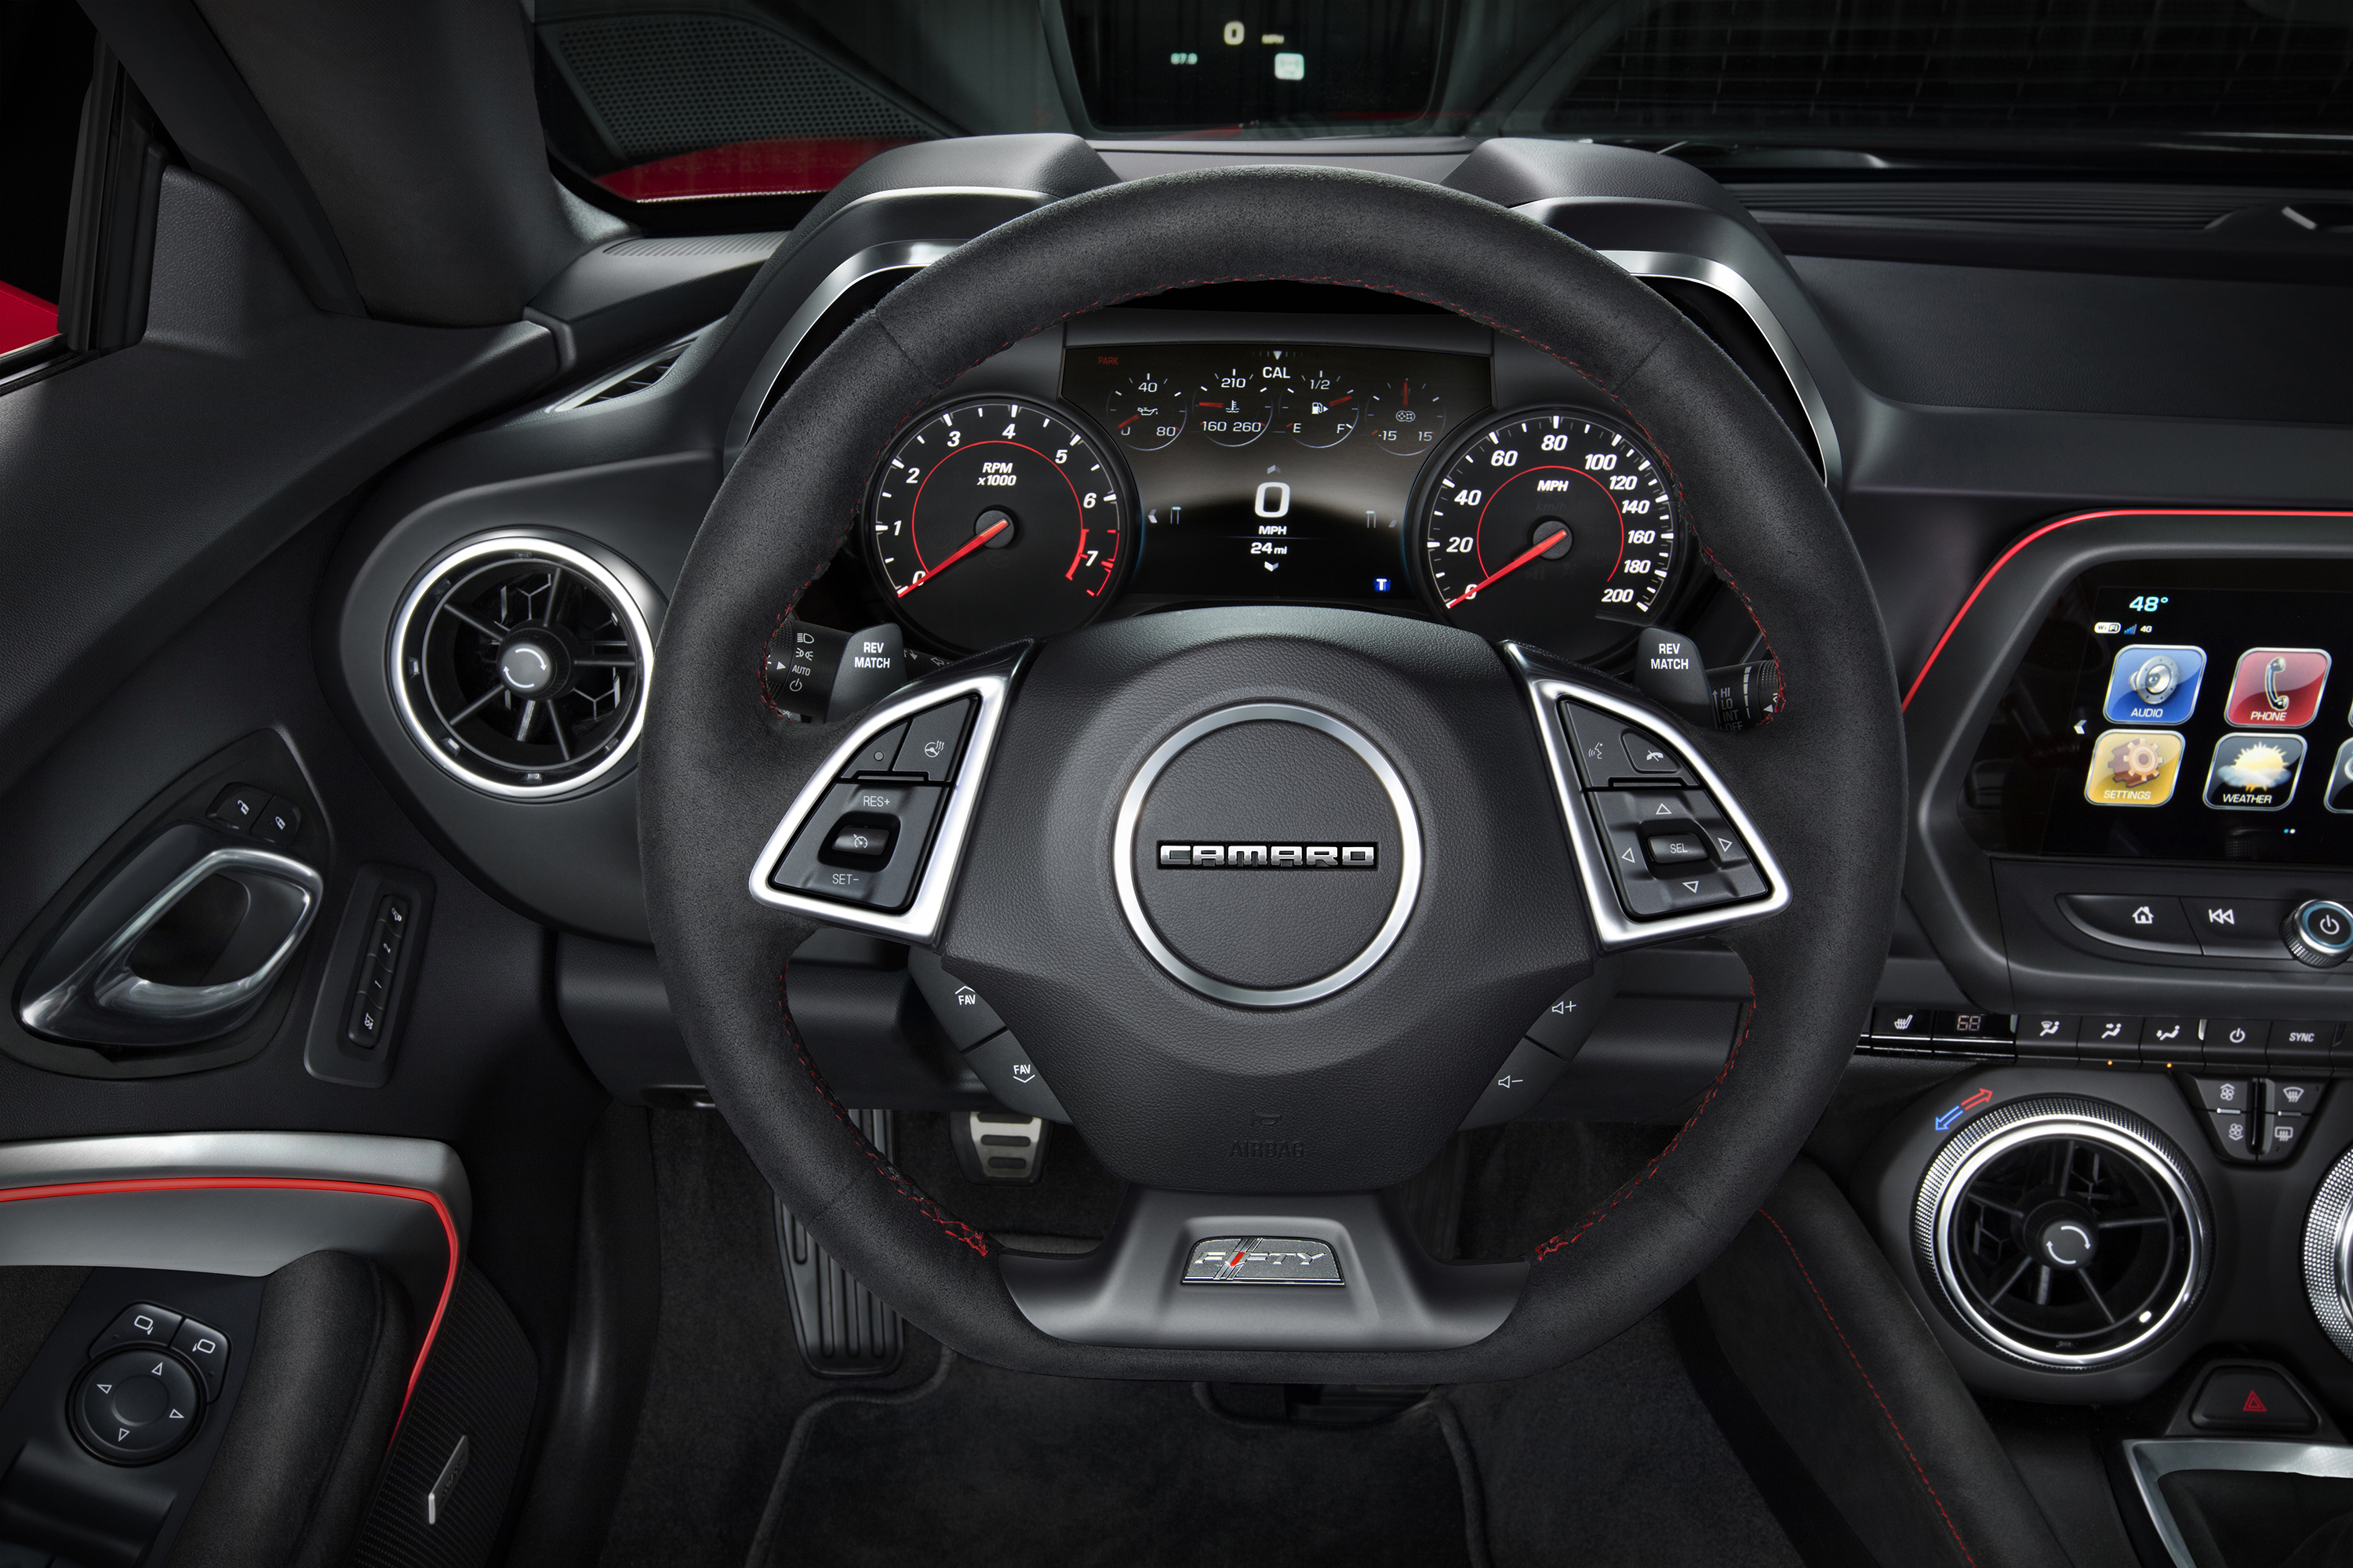 The driver-focused interior of the Camaro ZL1 features standard Recaro front seats, along with a sueded flat-bottom steering wheel and shift knob. Chevrolet's Performance Data Recorder is available, and allows drivers to record, share and analyze driving experiences on and off the track.